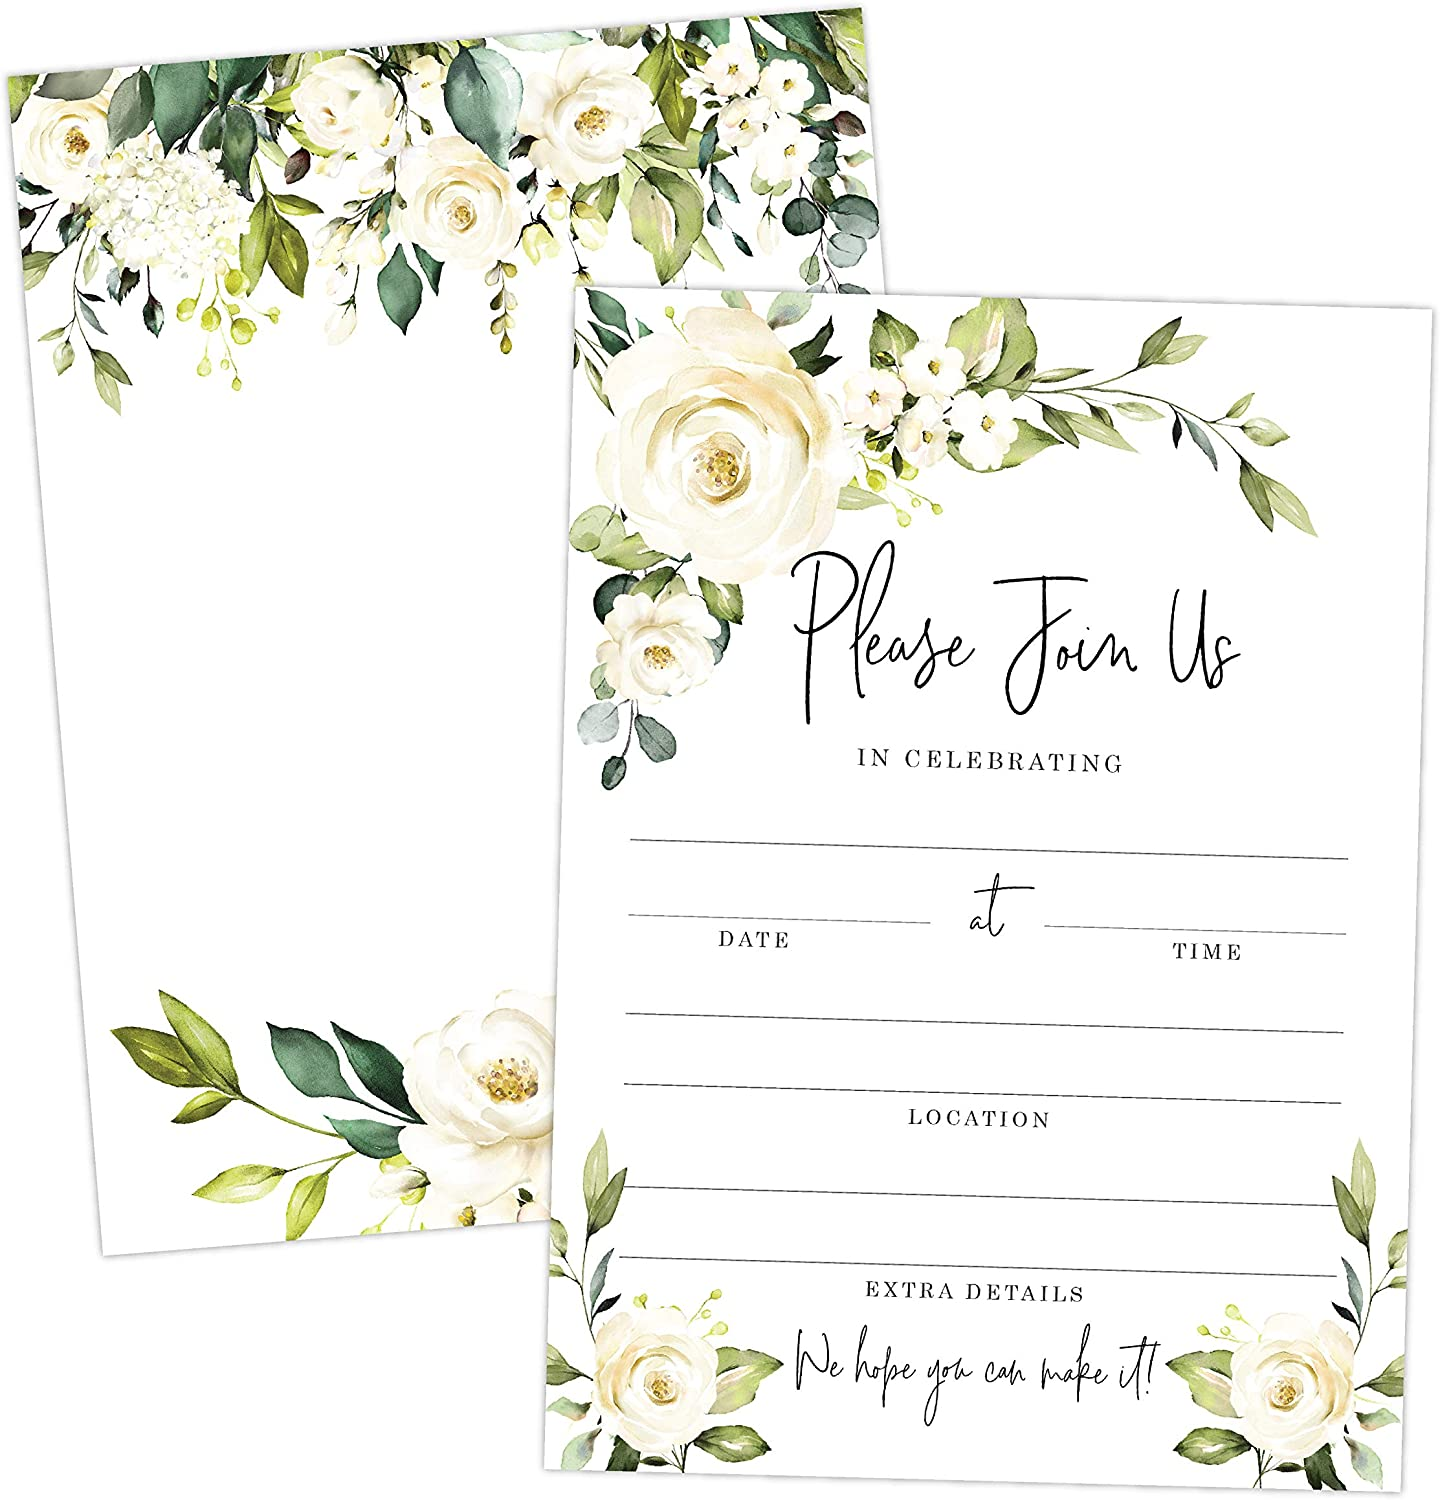 White Rose Invitations for All Occasions, Elegant Invites Perfect for Weddings, Bridal Showers, Birthday, Engagement, Bachelorette Party, Reception, Anniversaries